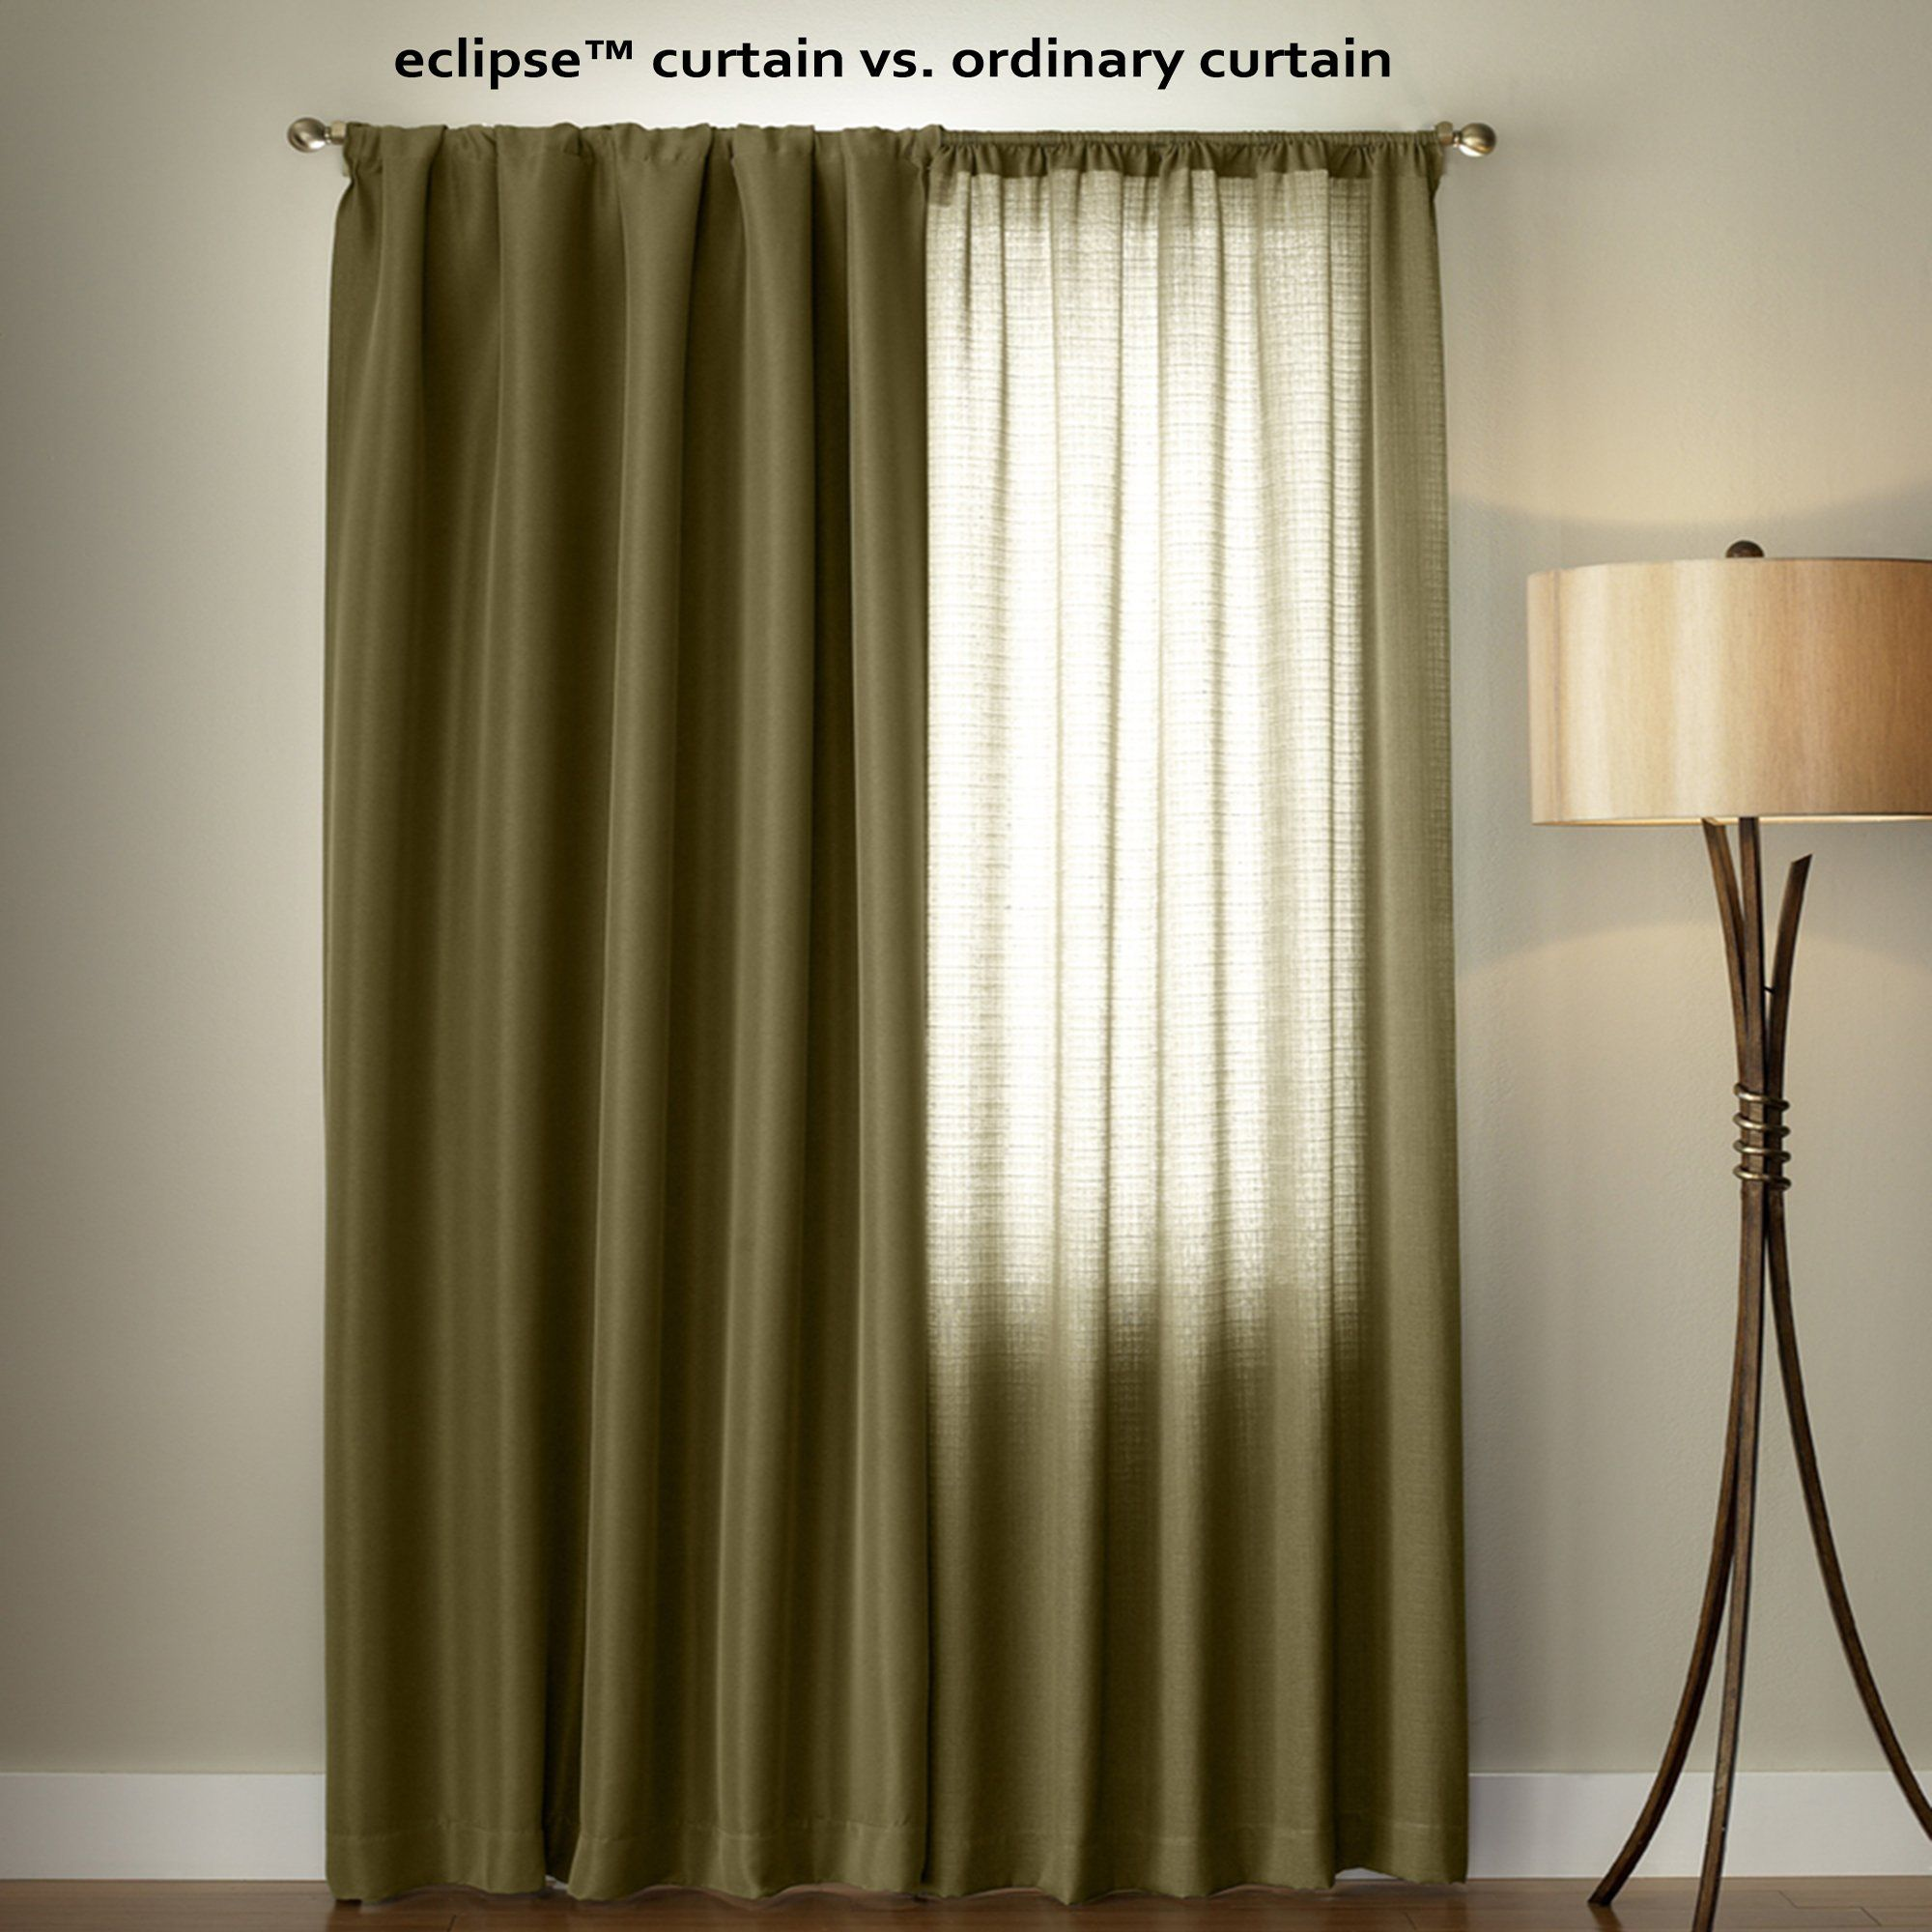 Lemon Green Curtains Eclipse 10707042x084lmn Kendall 42inch By 84inch Thermaback Room